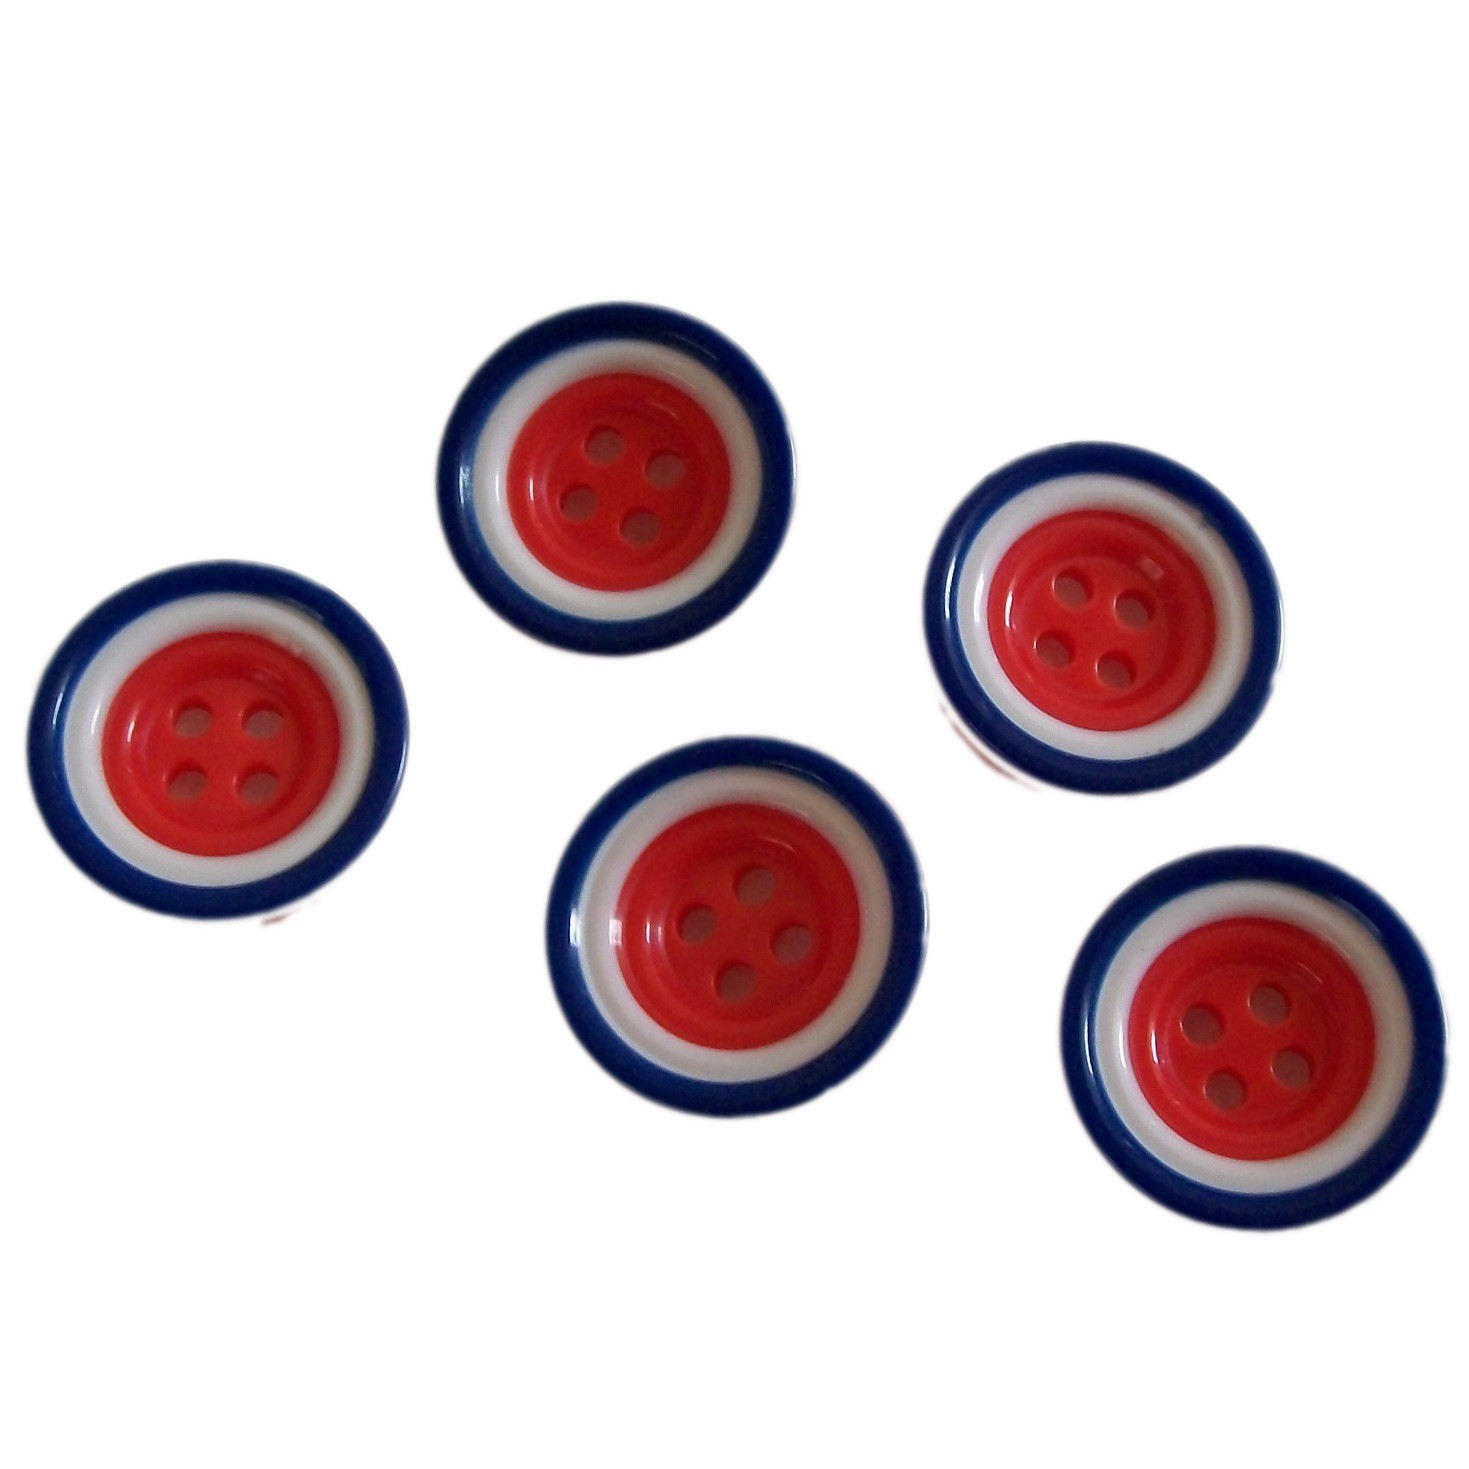 Mod Target Style Round Plastic Buttons 11mm Pack of 5